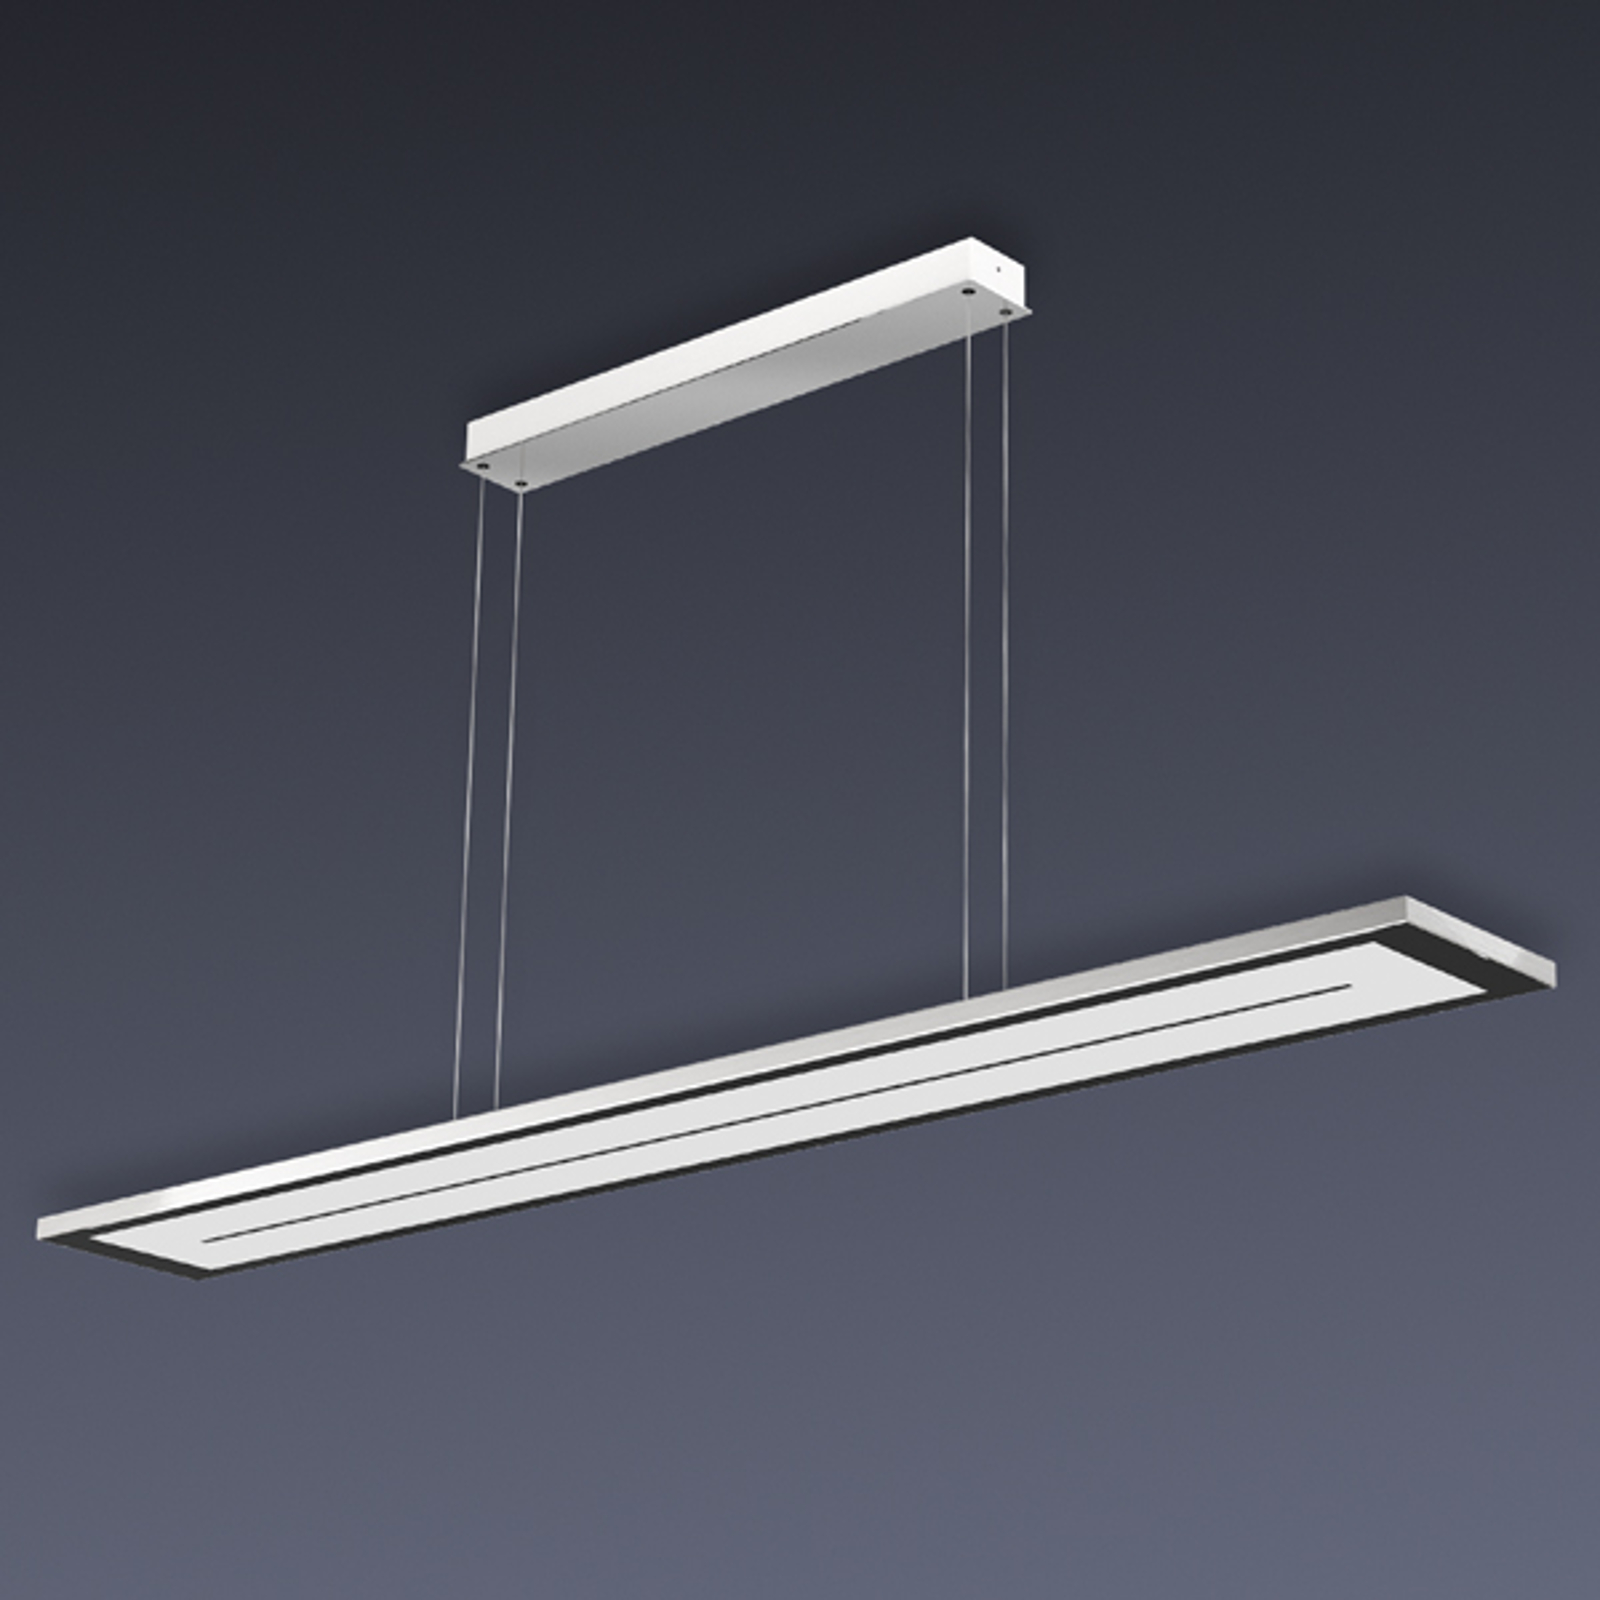 Dimmable LED pendant light Zen, 108 cm long_3025228_1